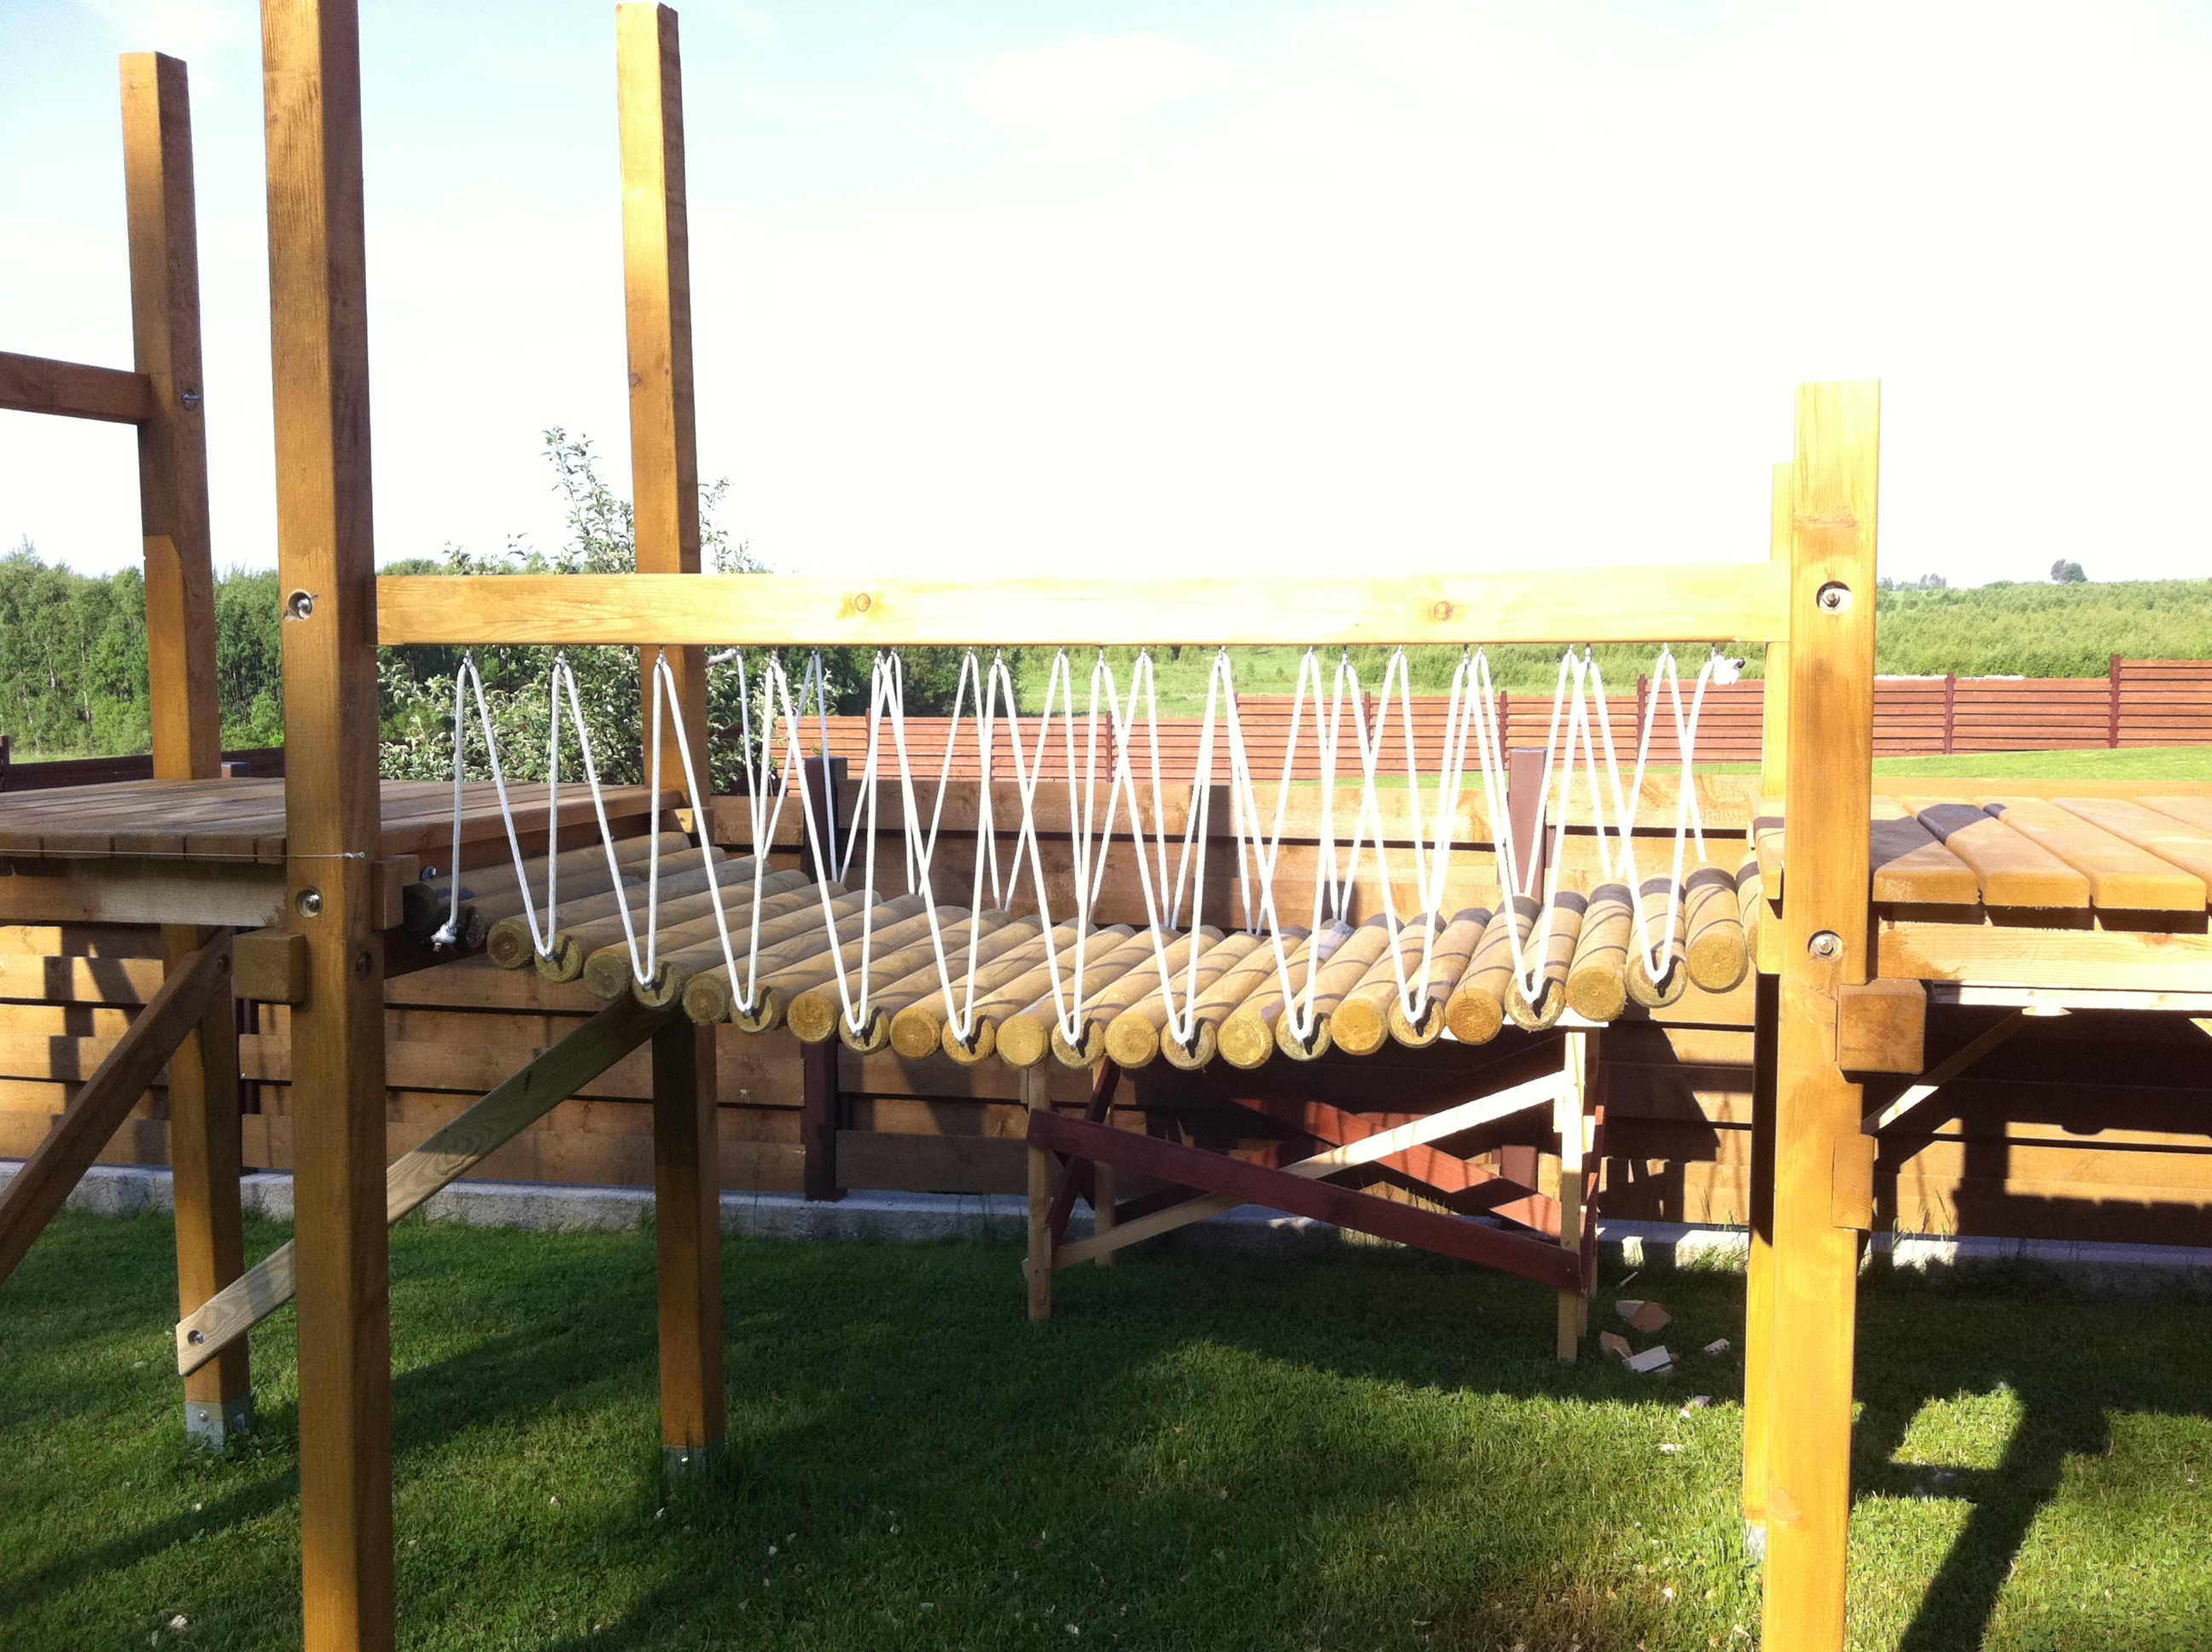 DIY rope bridge walkway playset swingset wood | PROJECTS \ outdoor |  Pinterest | Rope bridge, Walkways and Woods